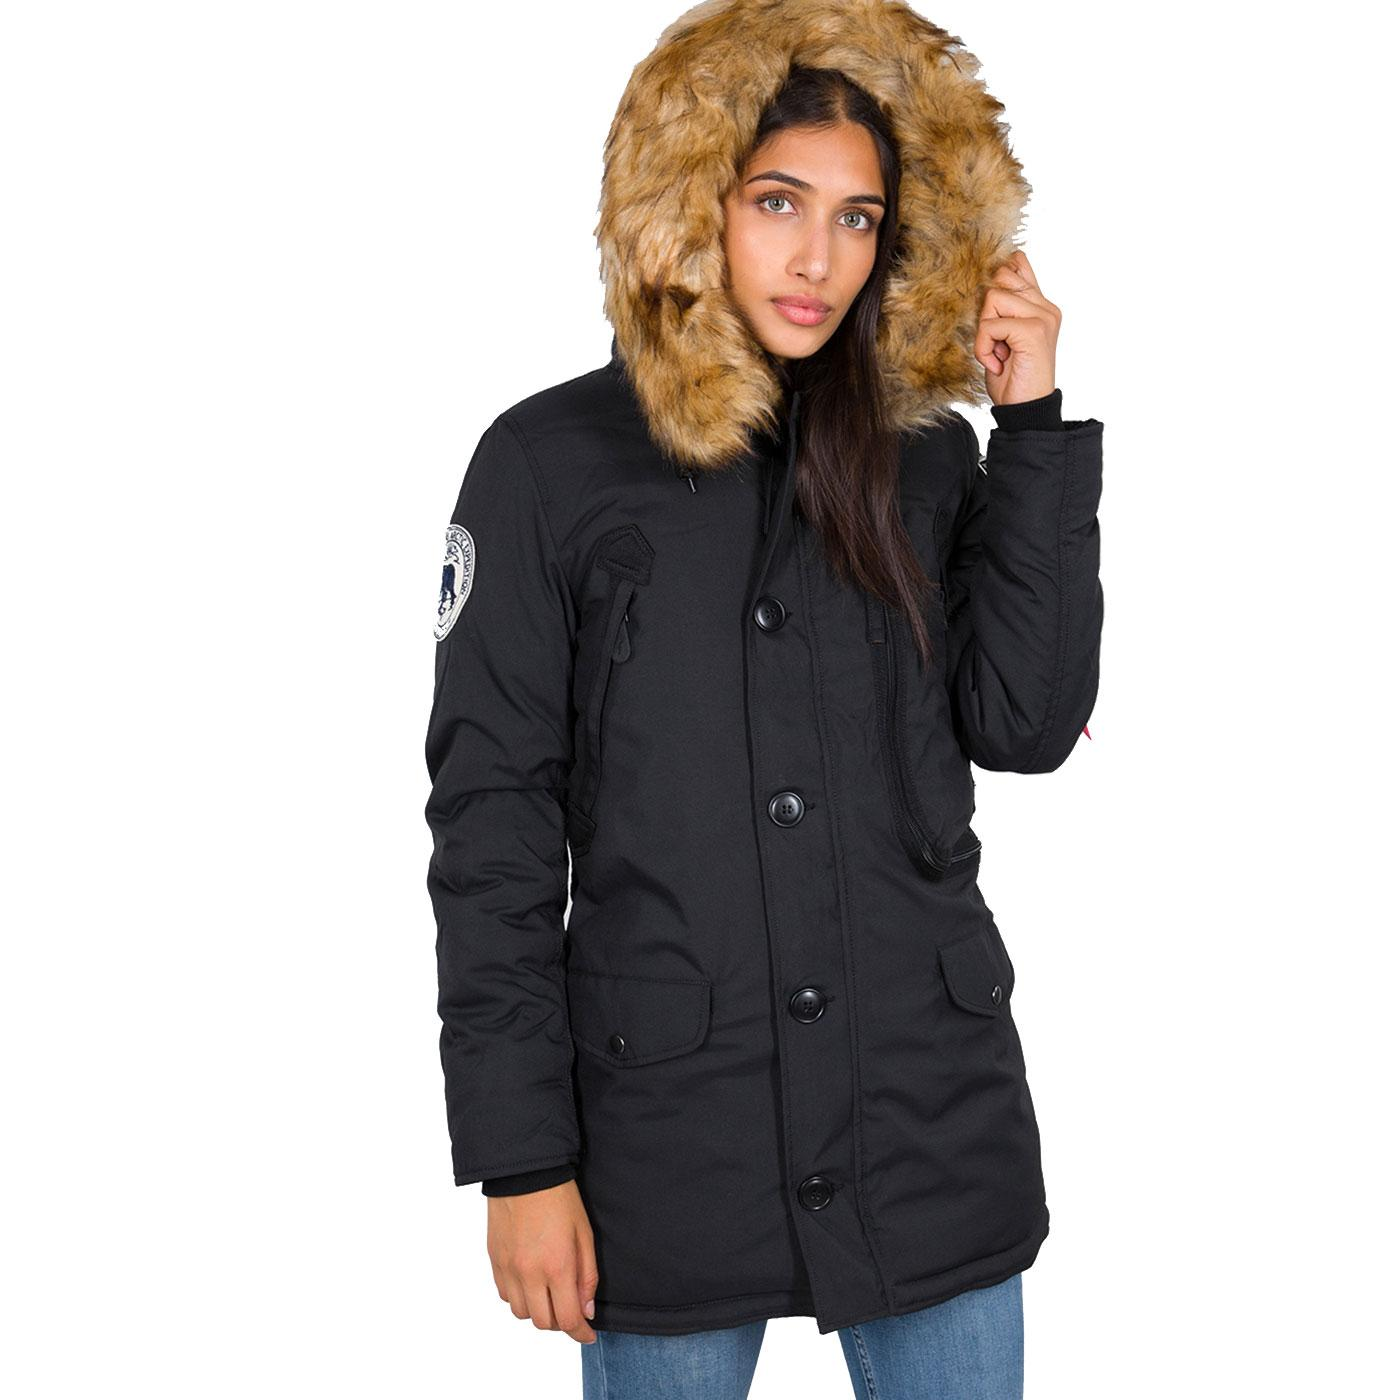 ALPHA INDUSTRIES Womens Polar Snorkel Parka Jacket